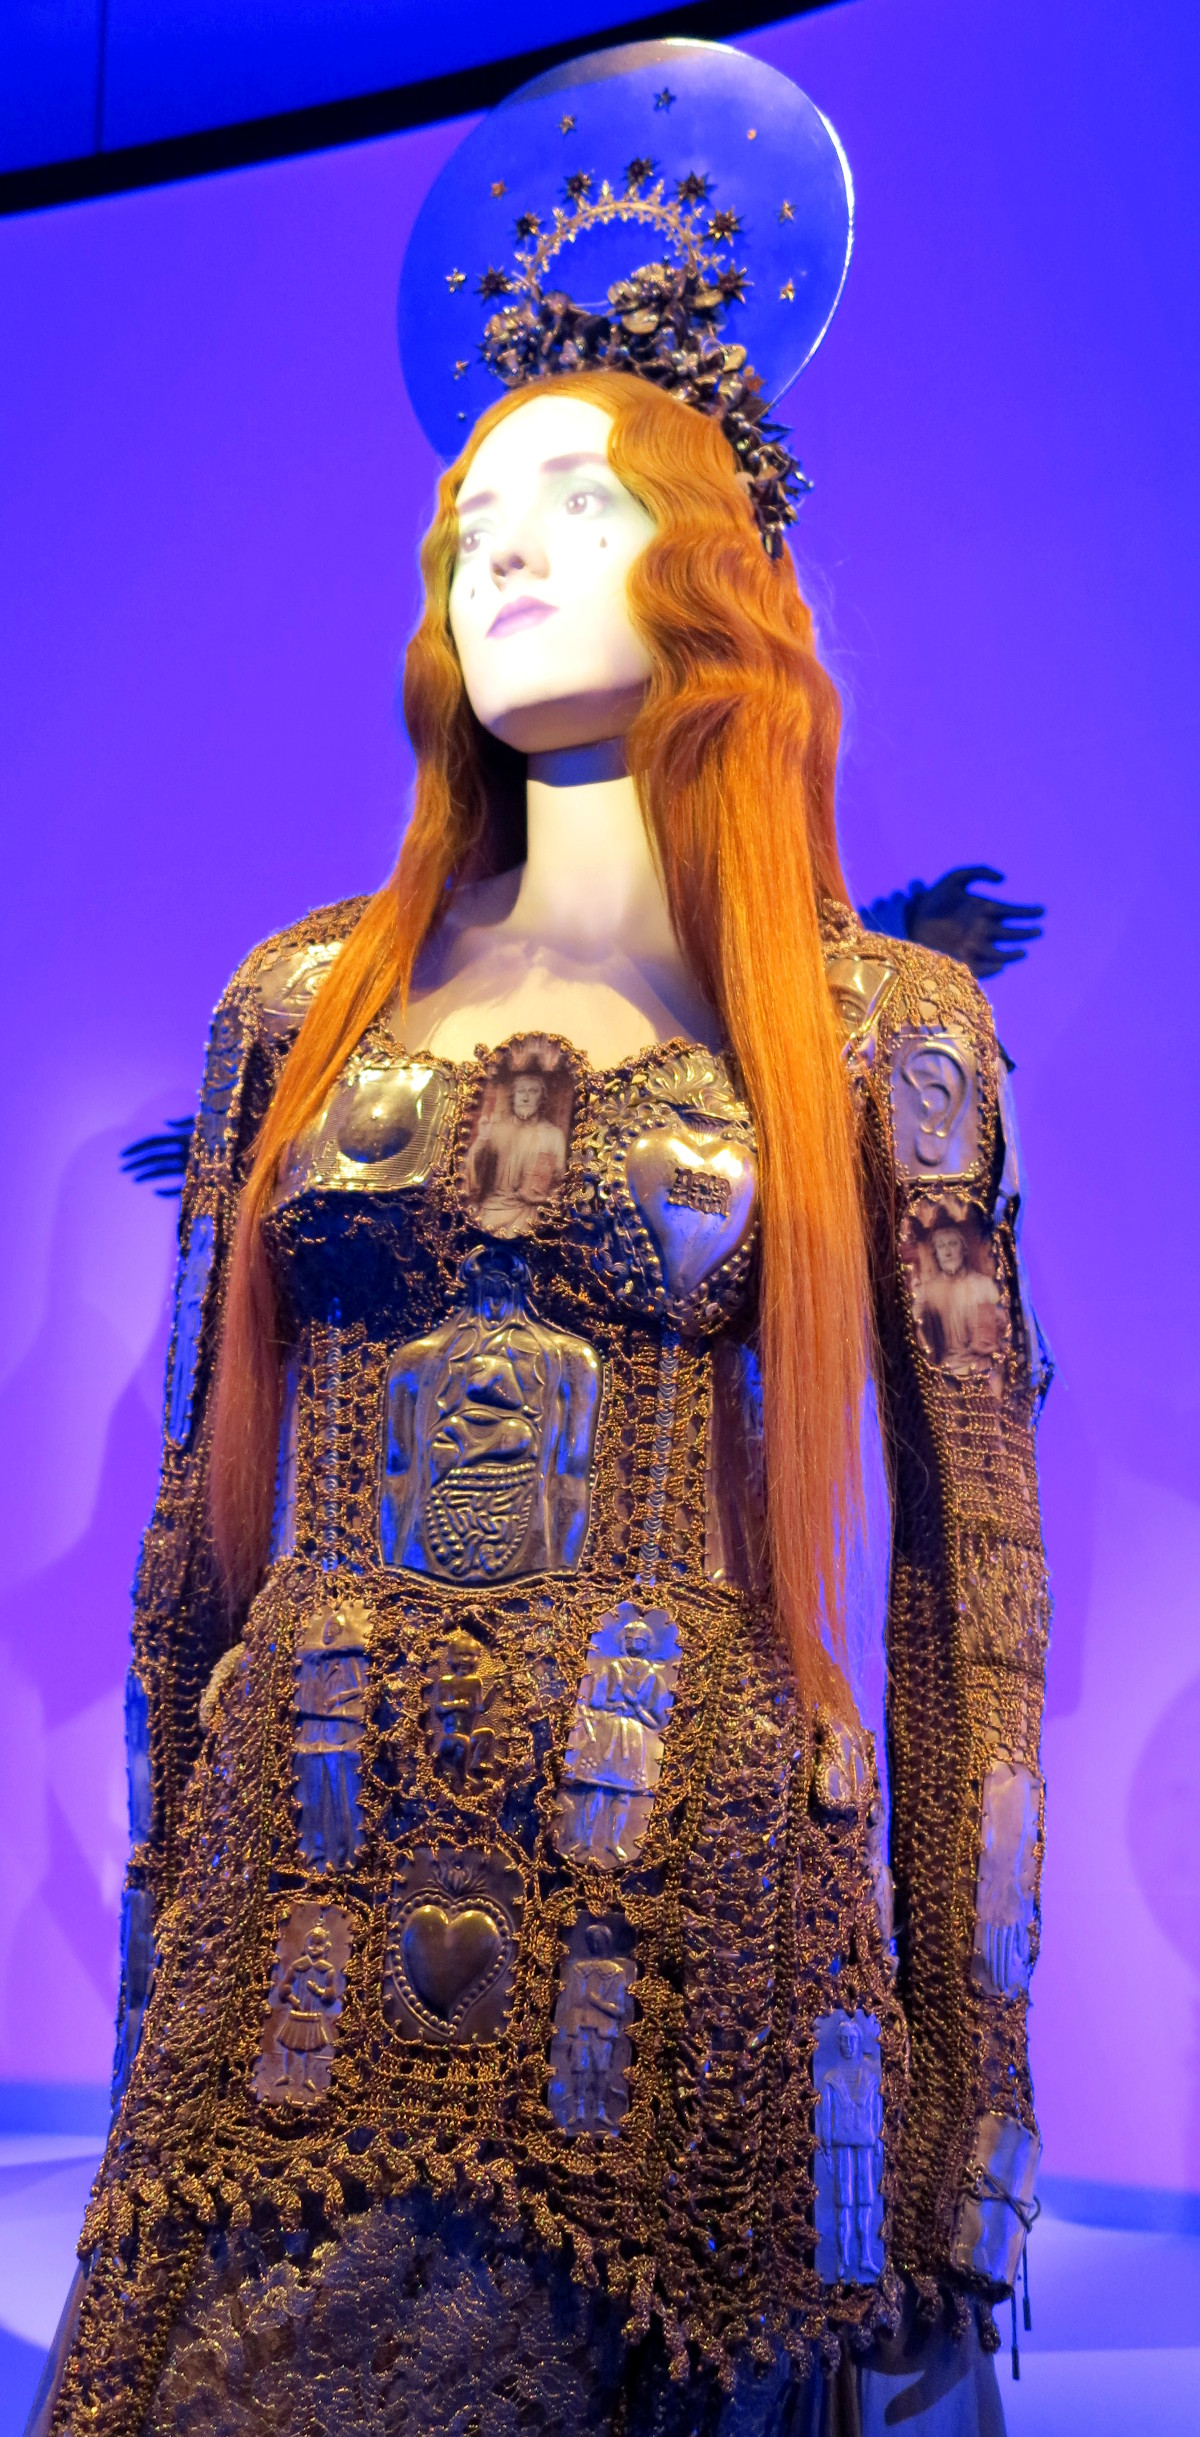 Madonna Jean Paul Gaultier National Gallery of Victoria